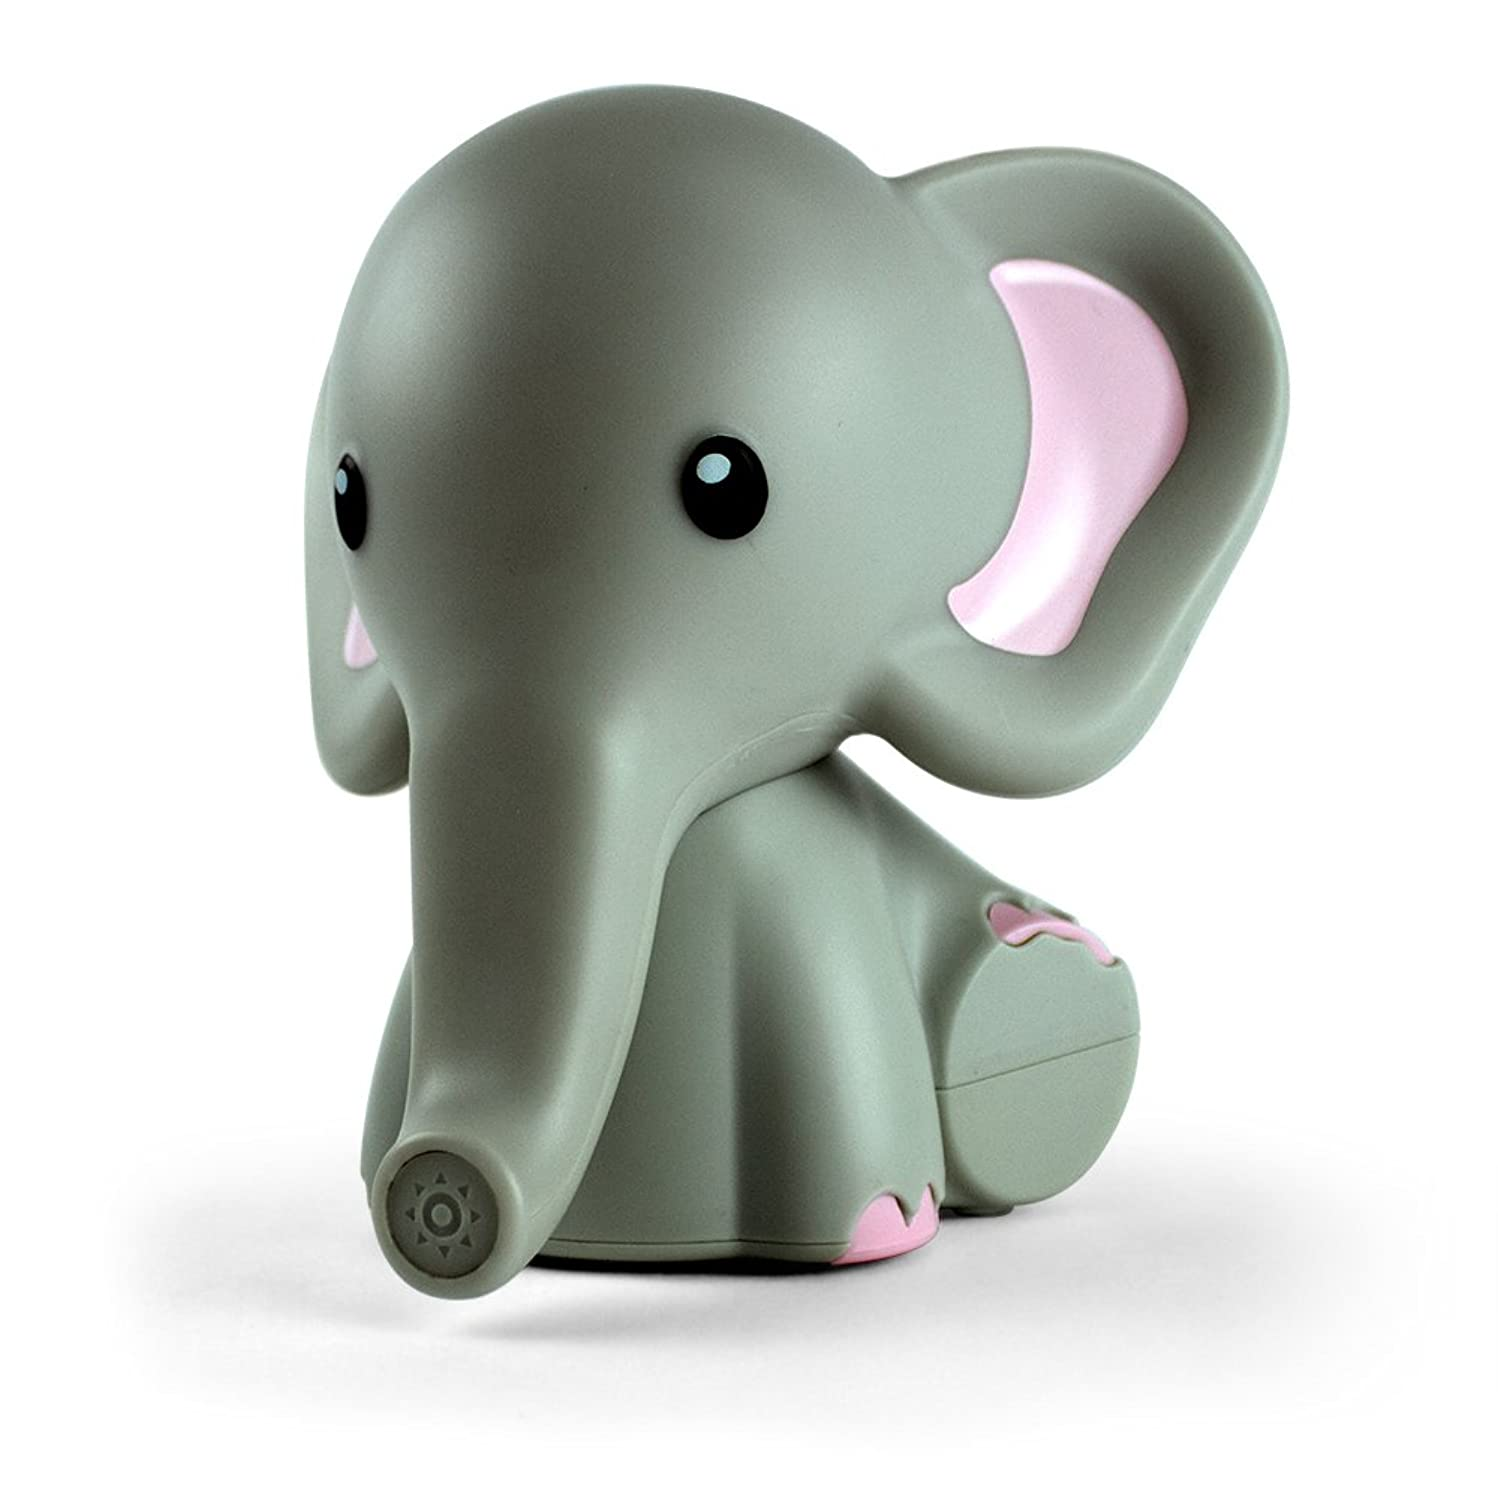 Kids Night Light, Elephant | Portable & Bedside Nightlight | 5 Color Changing LEDs & Auto Timer | mybaby, Comfort Creatures